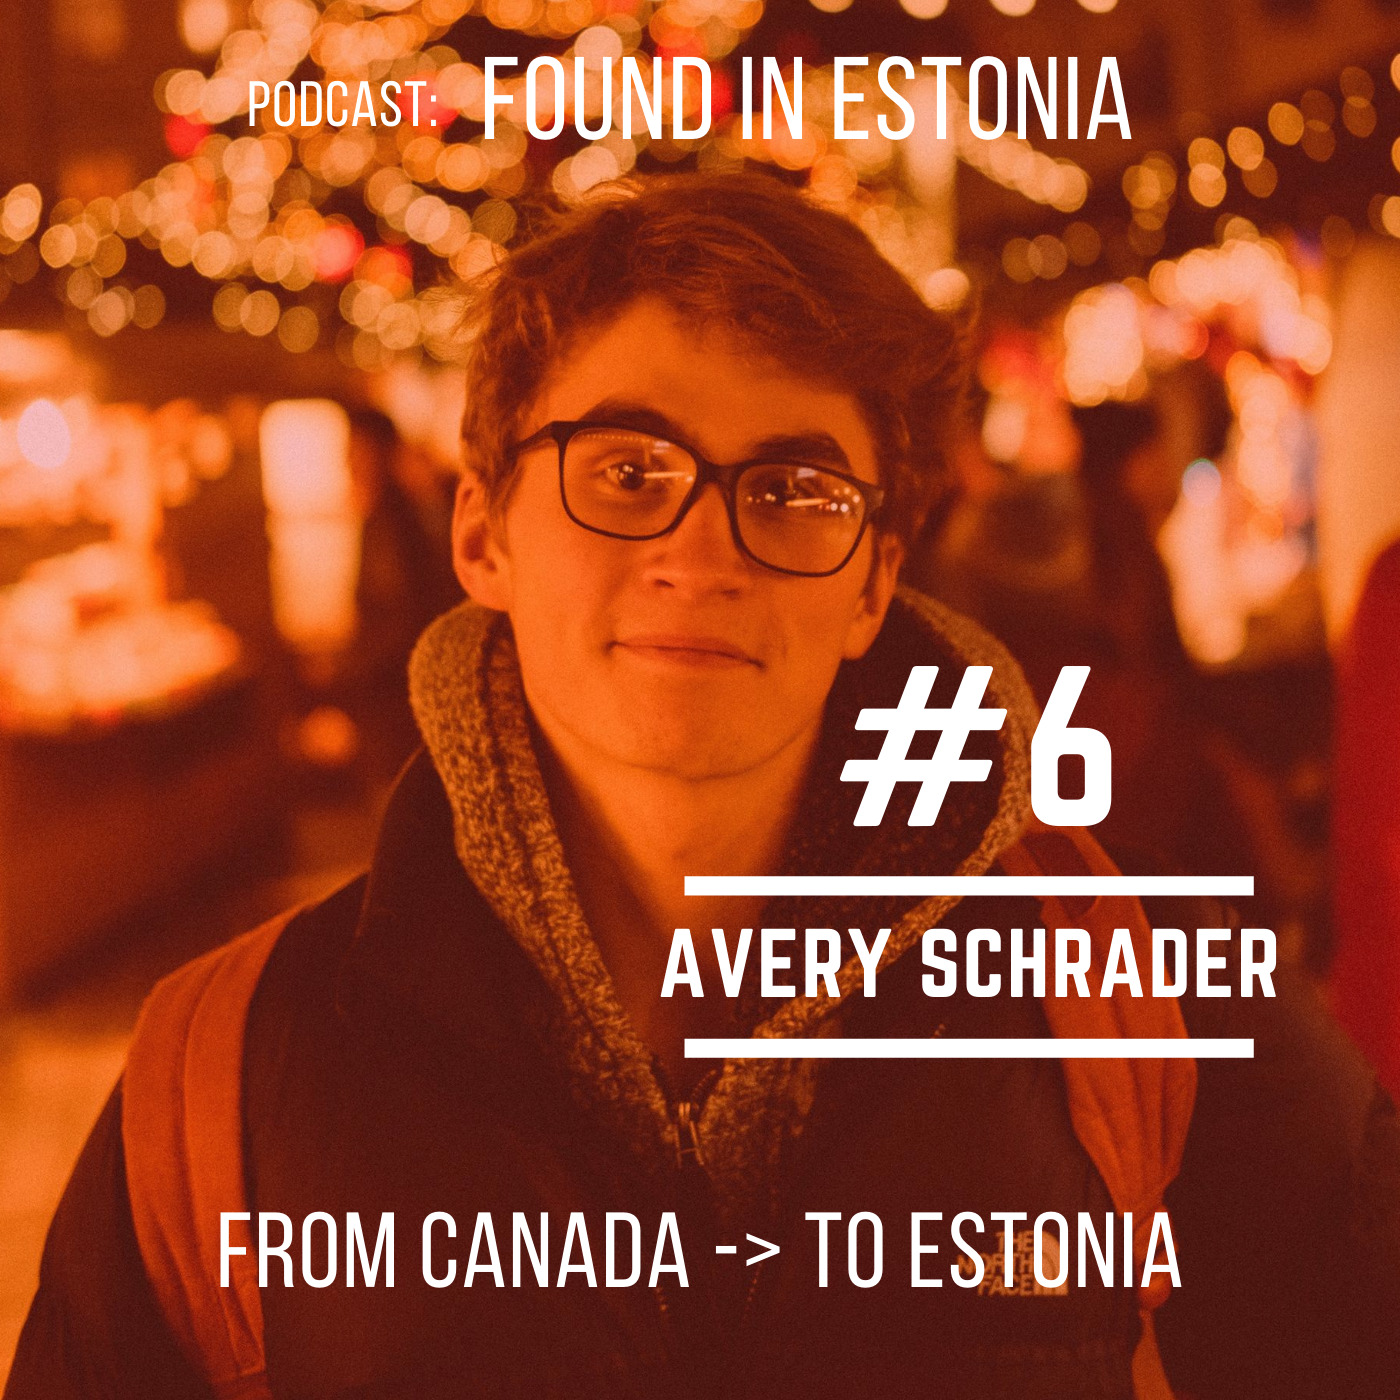 #6 Avery Schrader - From Canada to Estonia